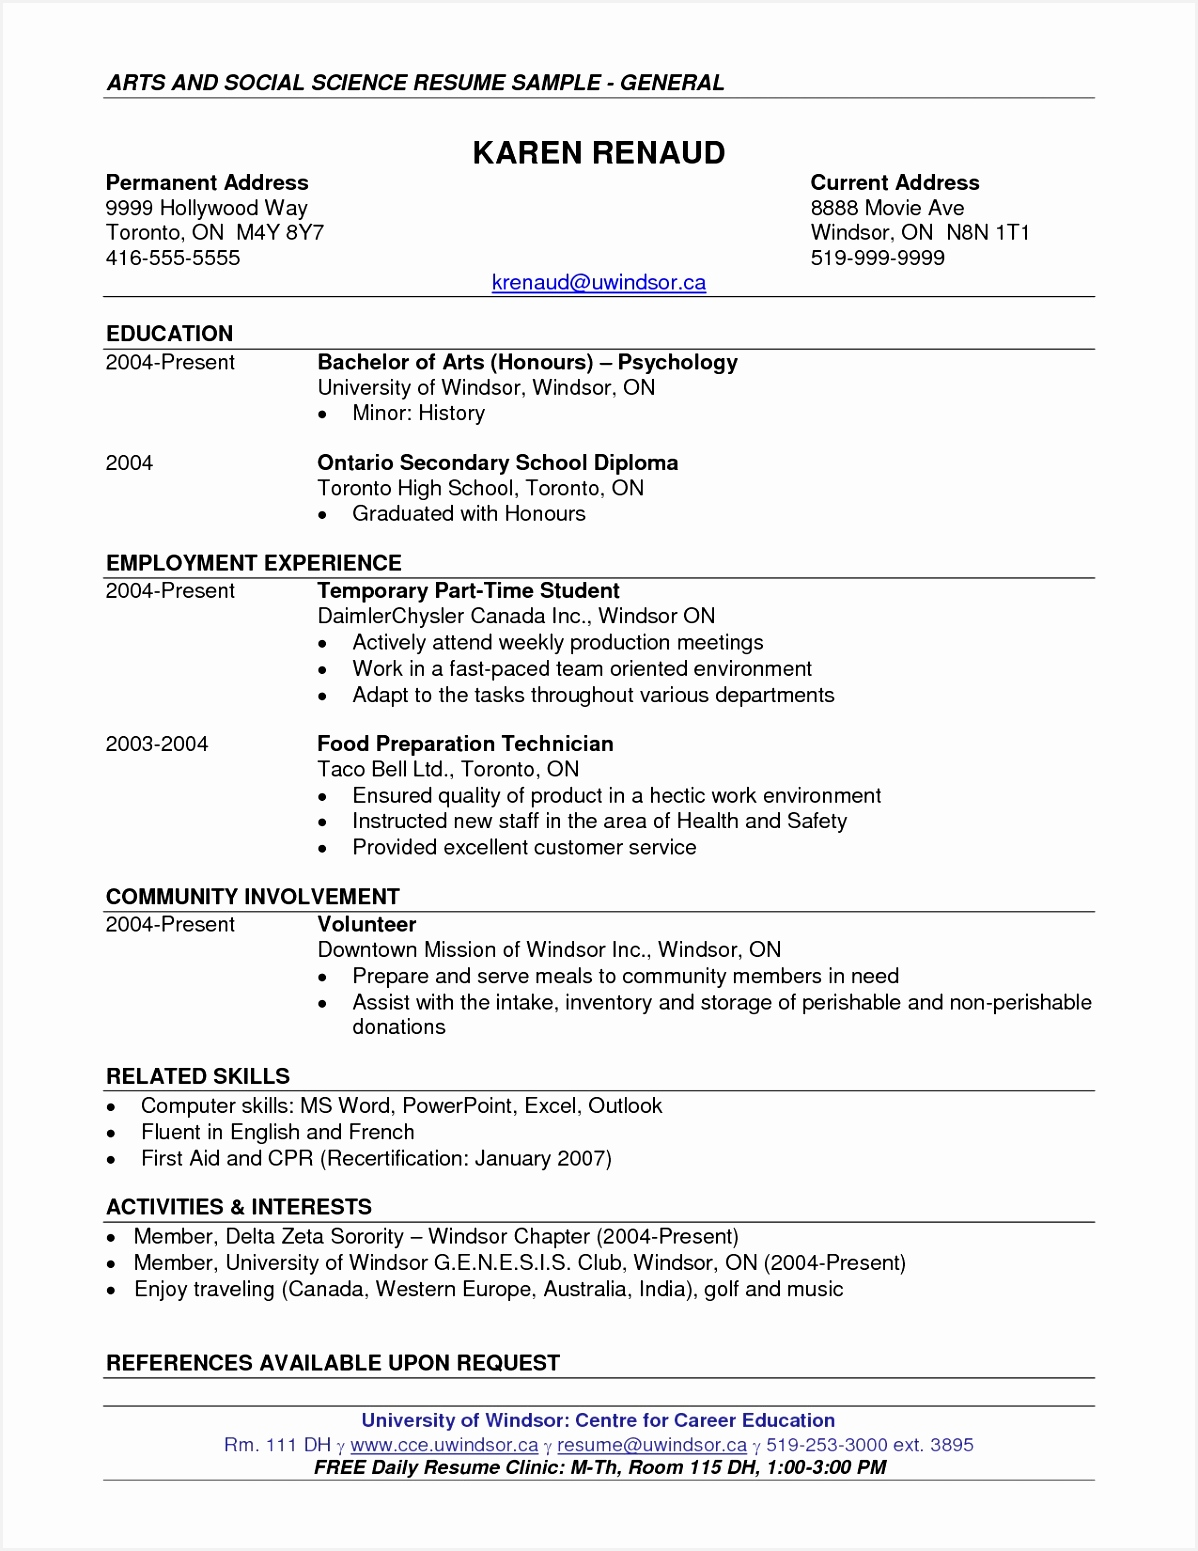 Environmental Health Specialist Sample Resume Geavh Best Of Resume Summary Examples Puter Science Student Cool Stock Resume15511198